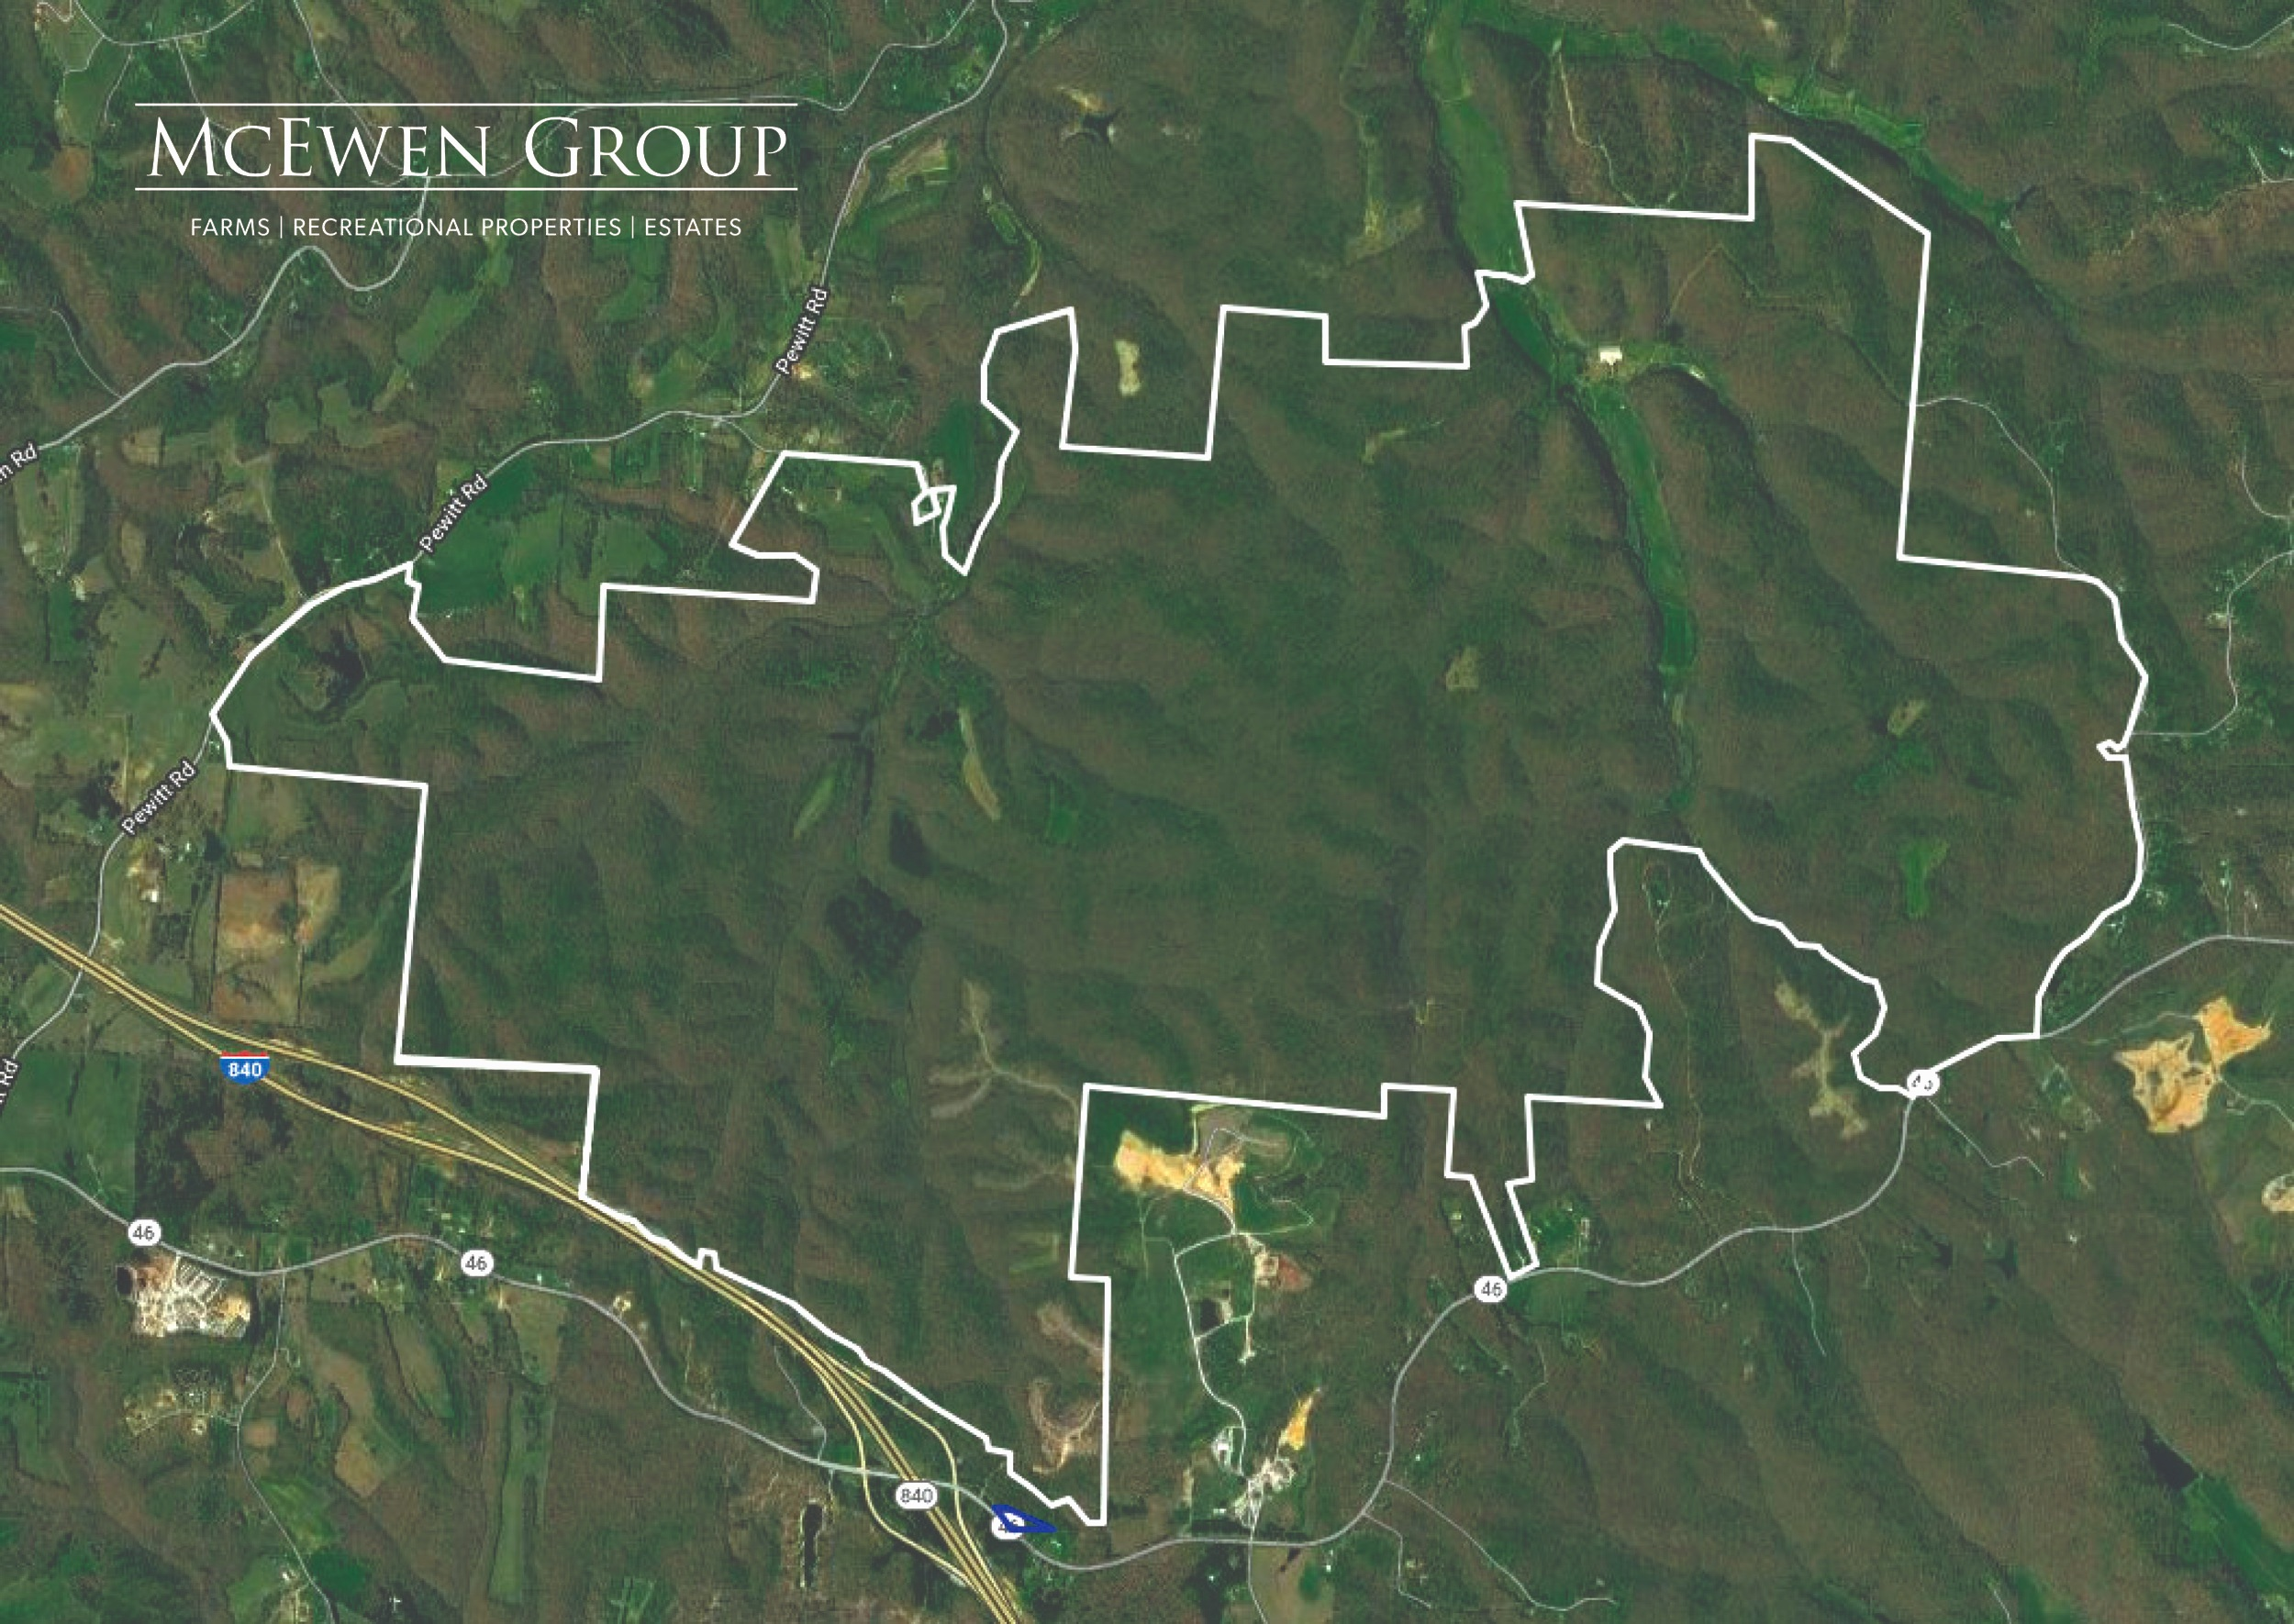 More than 4,000 acres of quality land.